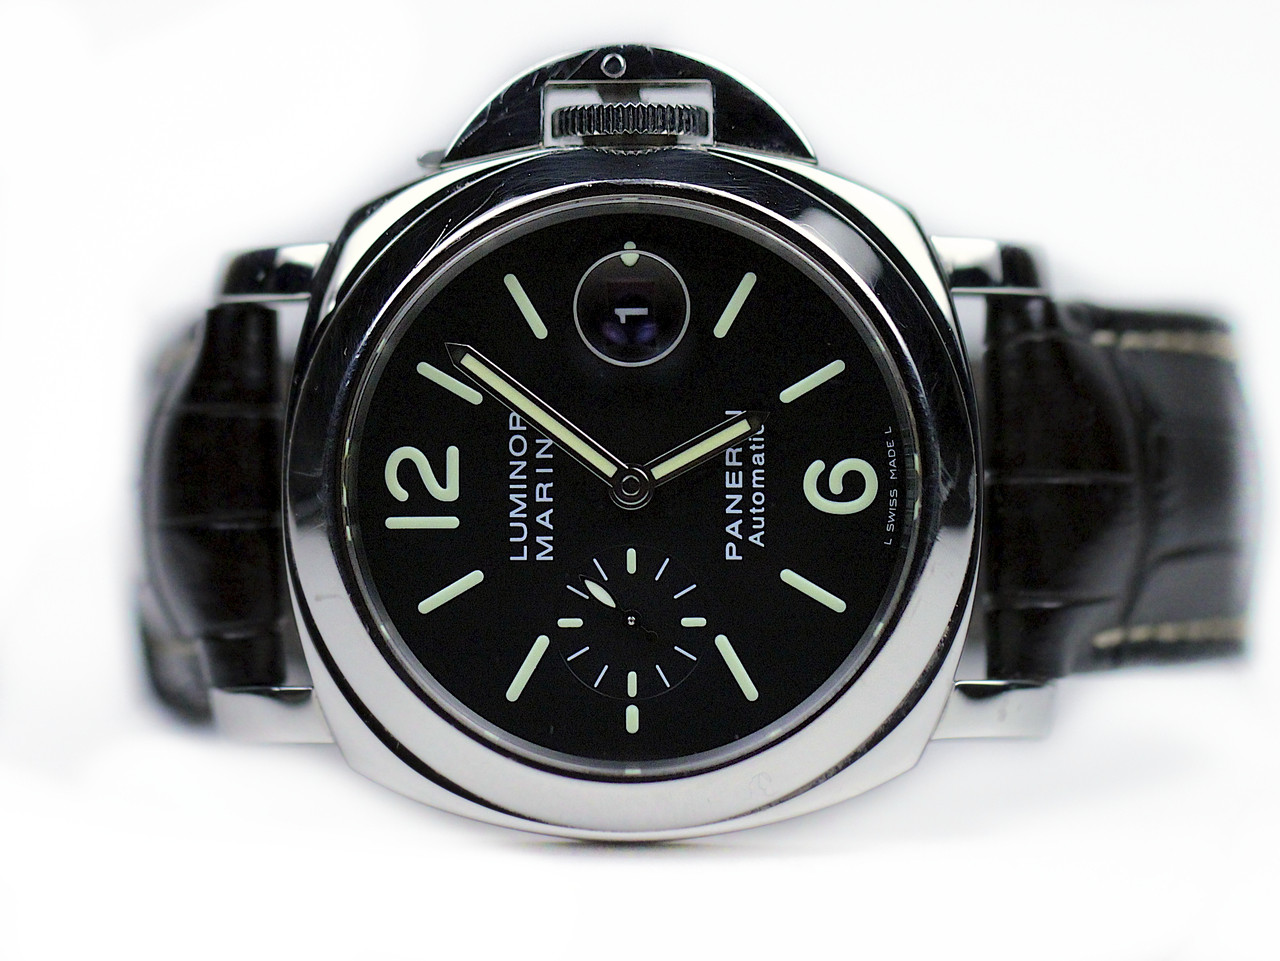 d6c6ce9de0b90 Panerai Watch - Luminor Marina Automatic Acciaio 44mm PAM 104 for sale  Legend of Time Chicago Watch Center